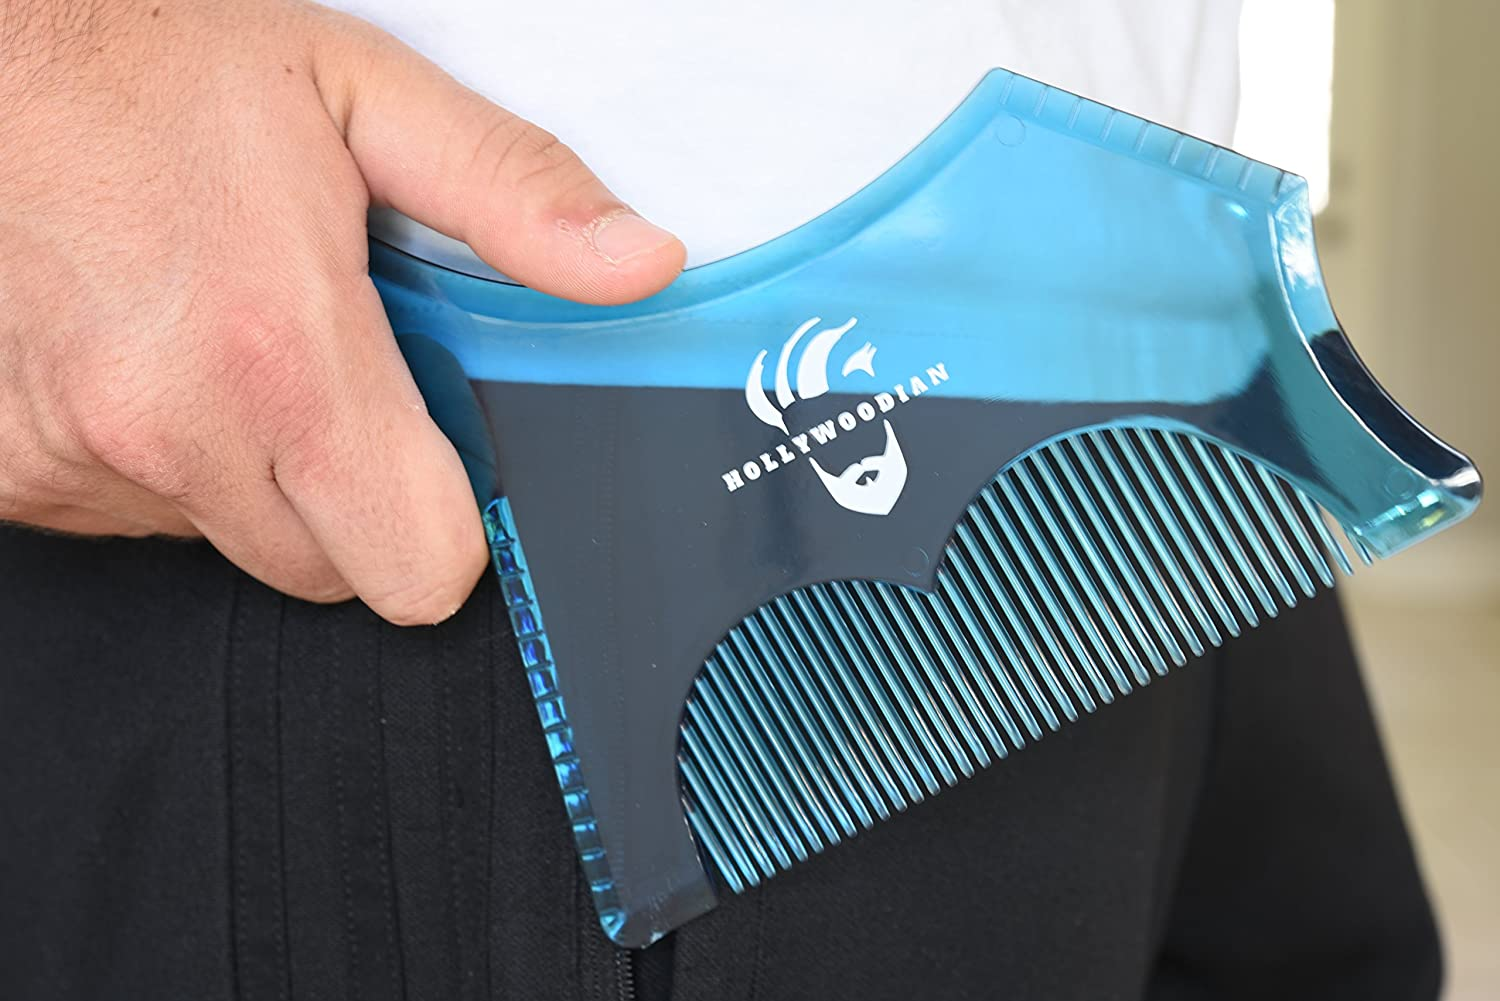 HOLLYWOODIAN New (2018) Transparent Beard Shaping & Styling Tool with Built-in Comb for the Best Line Up, Greater Control and Comfort - Works with any Clippers or Beard Trimmers